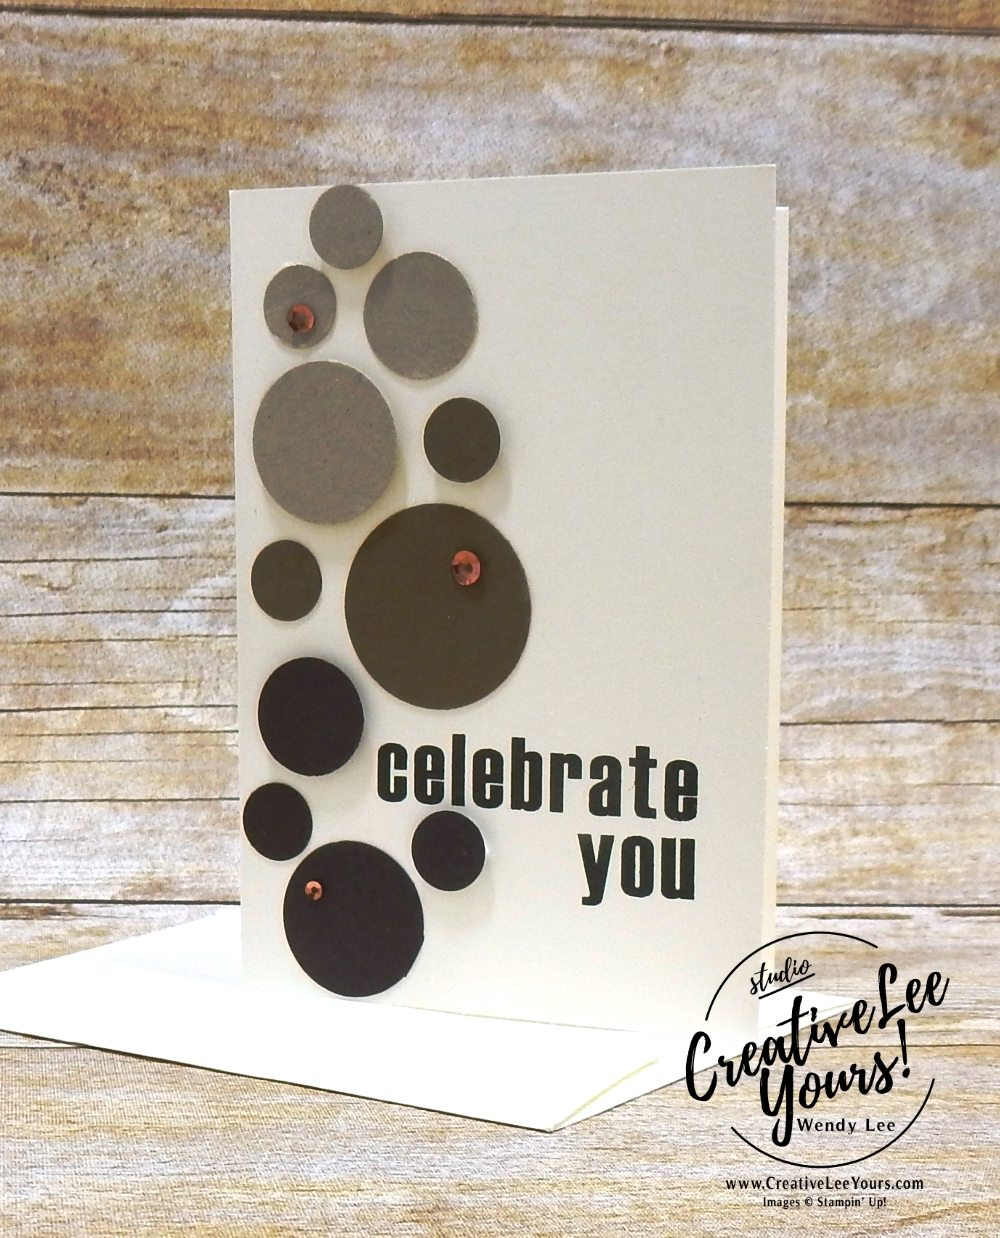 Celebrate You by Wendy Lee,February 2018 Paper Pumpkin Wildflower Wishes Kit,wendy lee,Stampin up, stamping, handmade, cards, #creativeleeyours, creatively yours, creative-lee yours,March 2018 FMN class bonus card,quick and easy, masculine card,fathers day, birthday,SU,SU cards